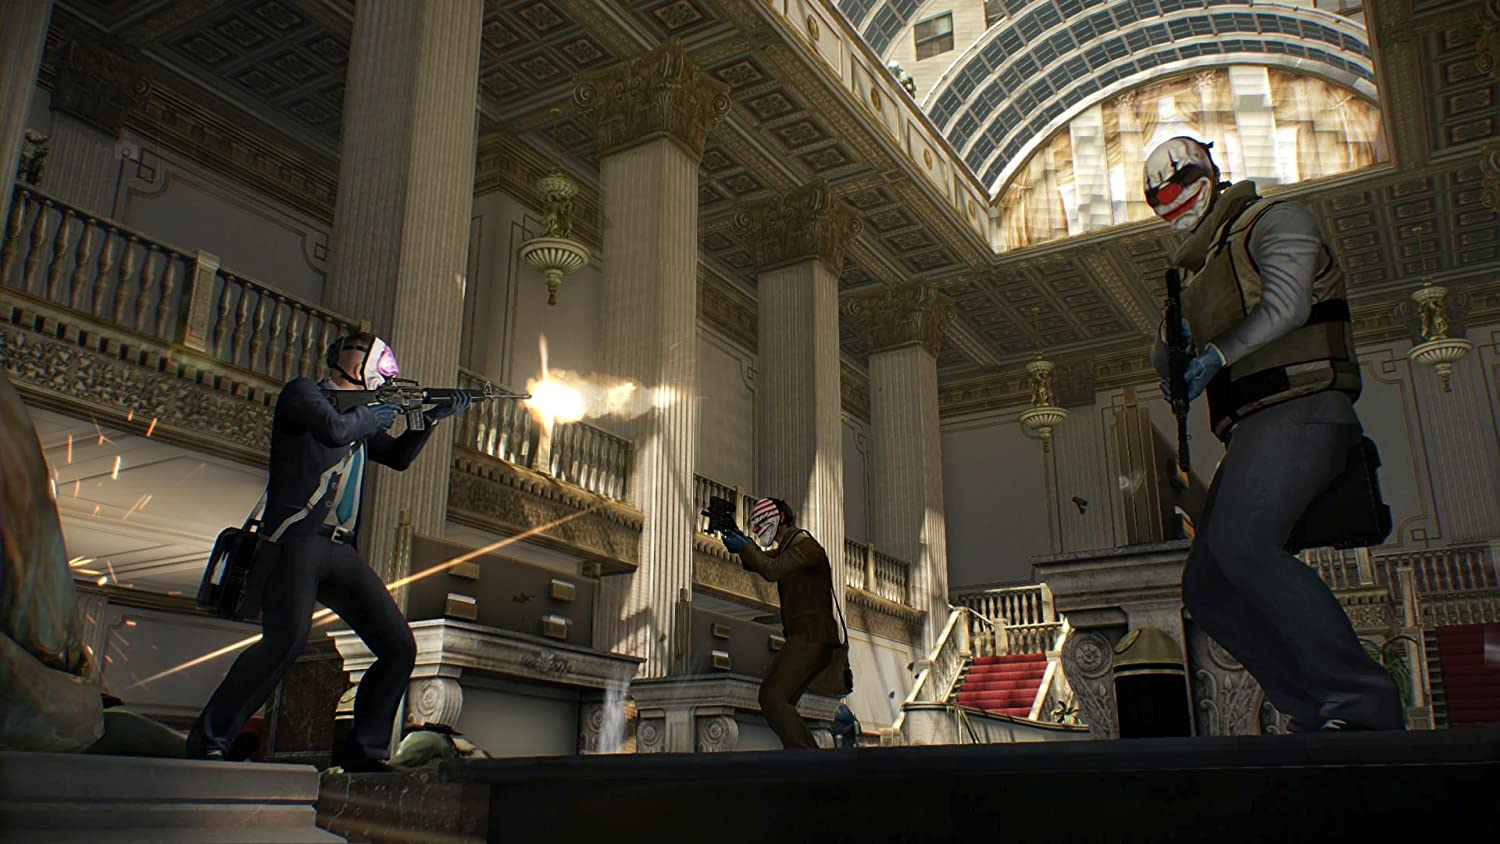 payday 2 pc game free download 3.5 gb